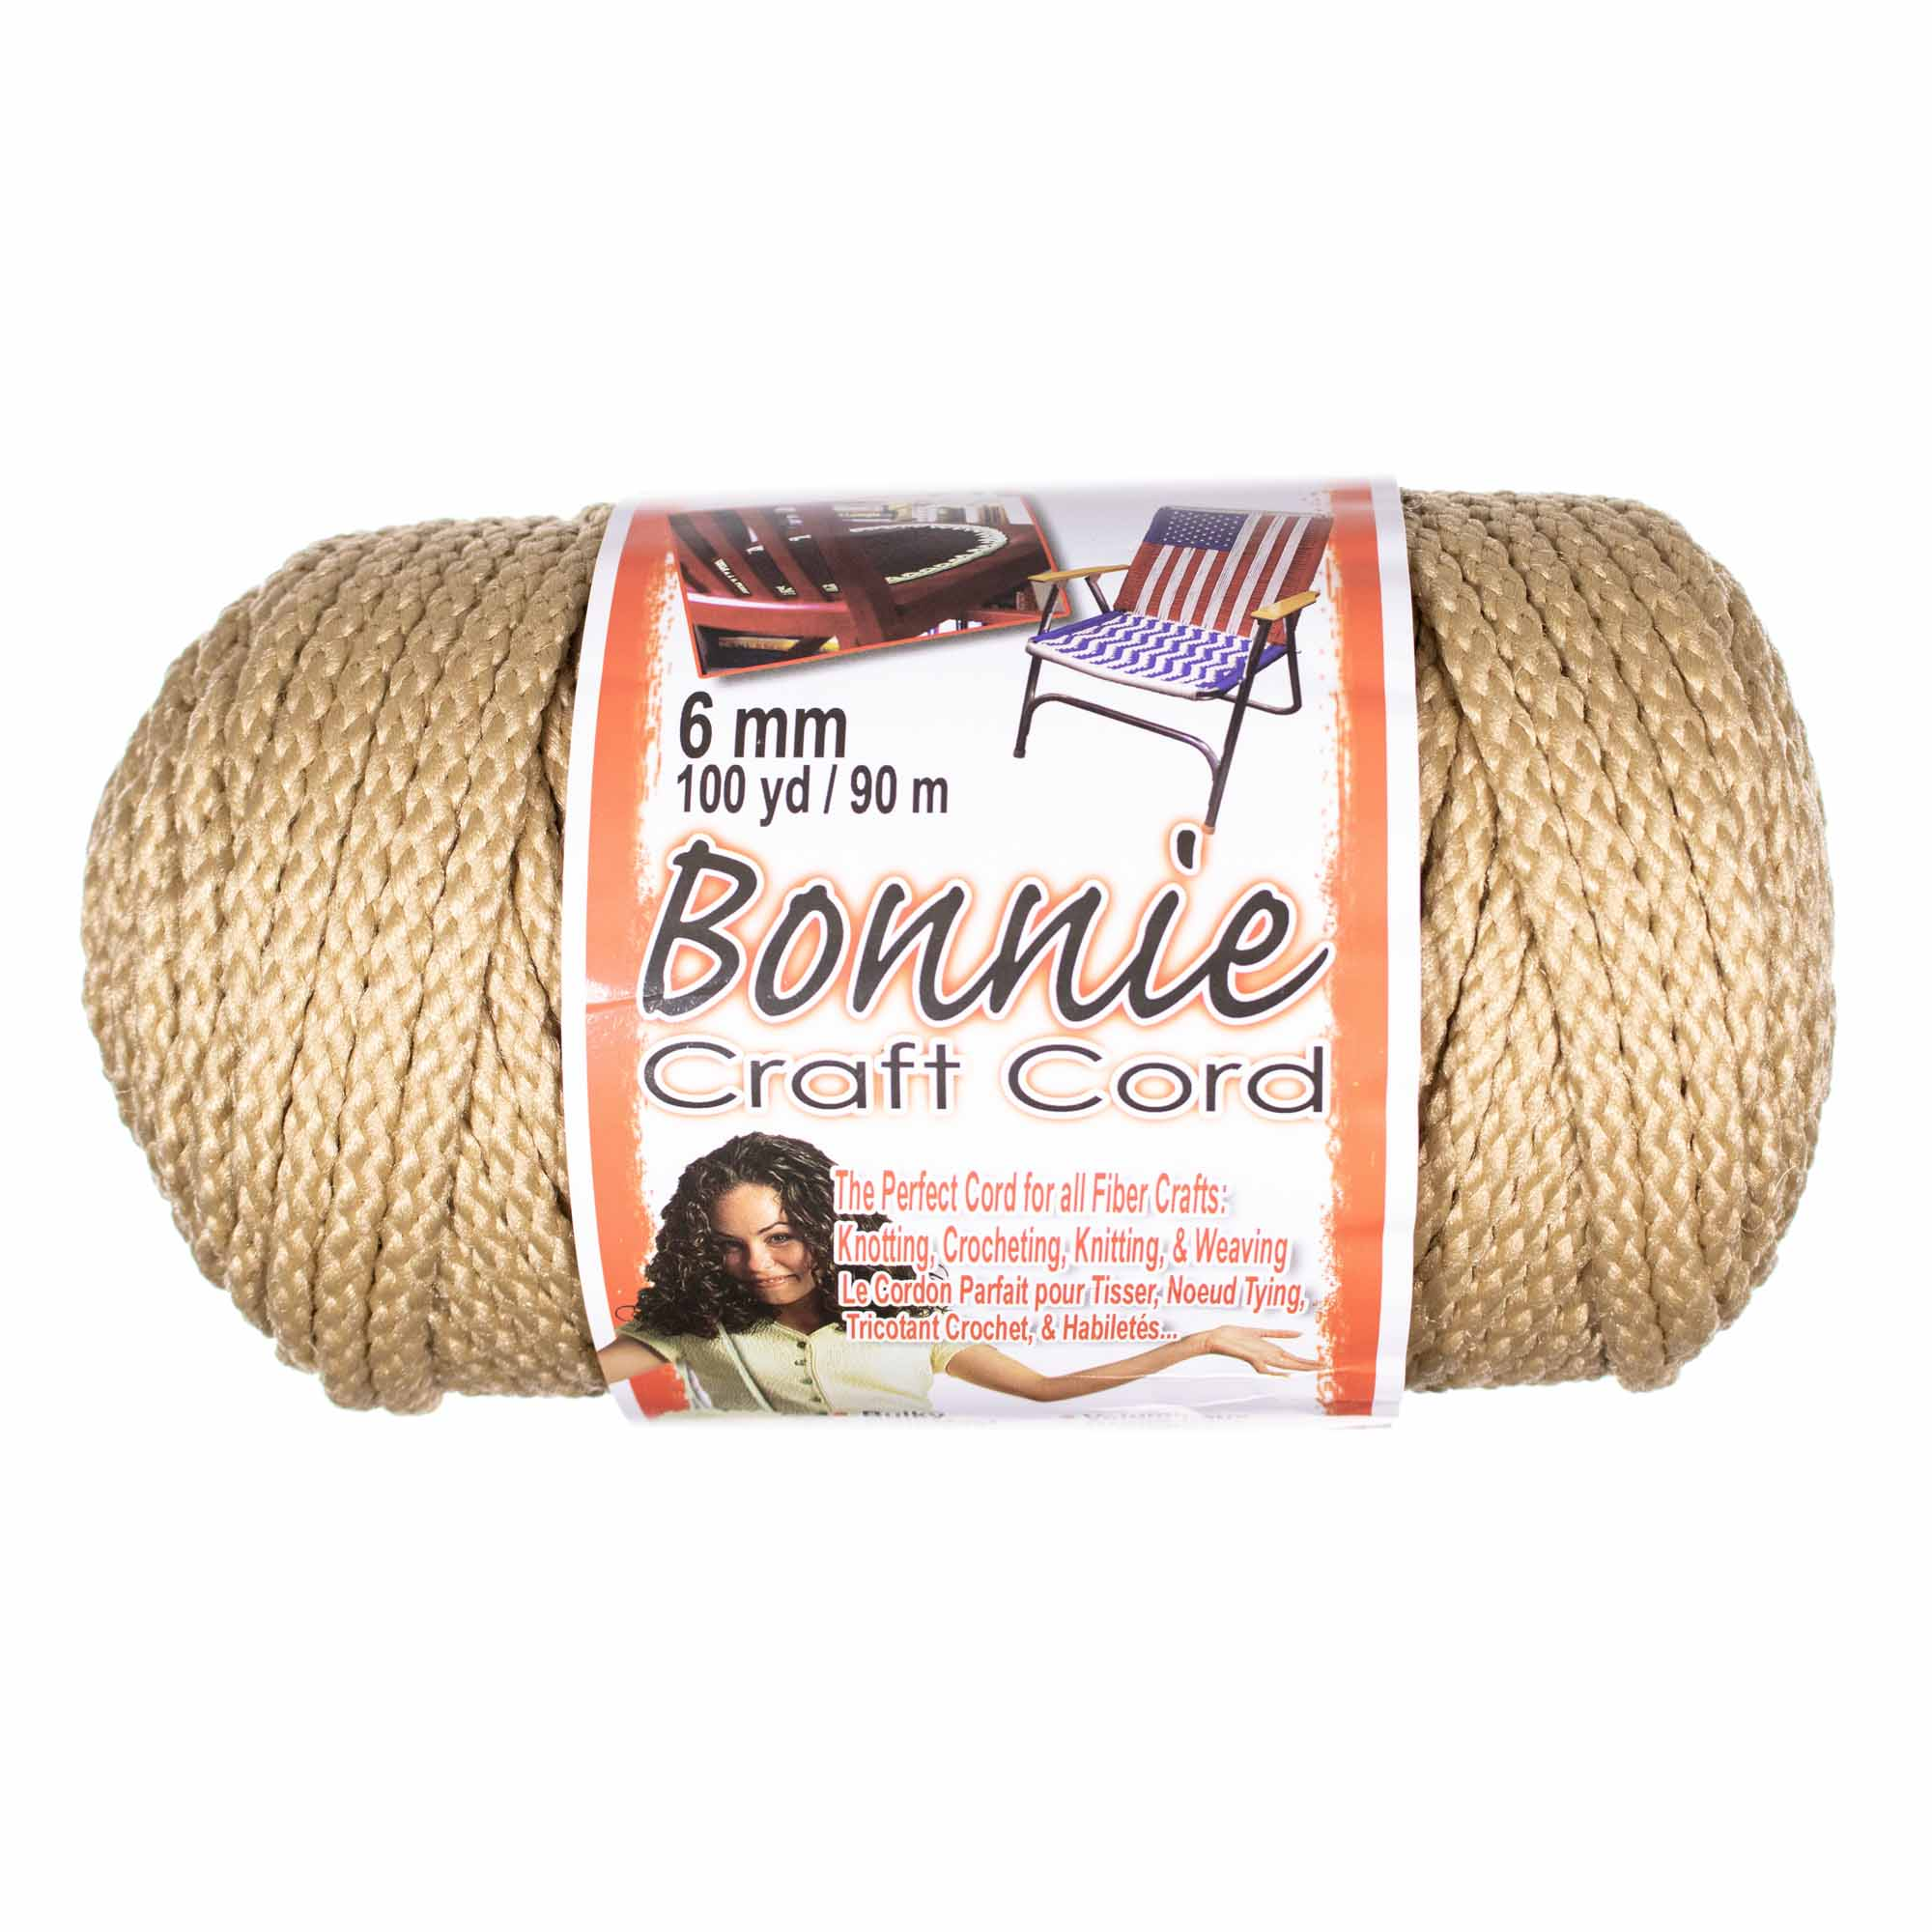 Craft County Bonnie Cord - 6mm Diameter - 100 Yards in Length - Available in an Assortment of Colors